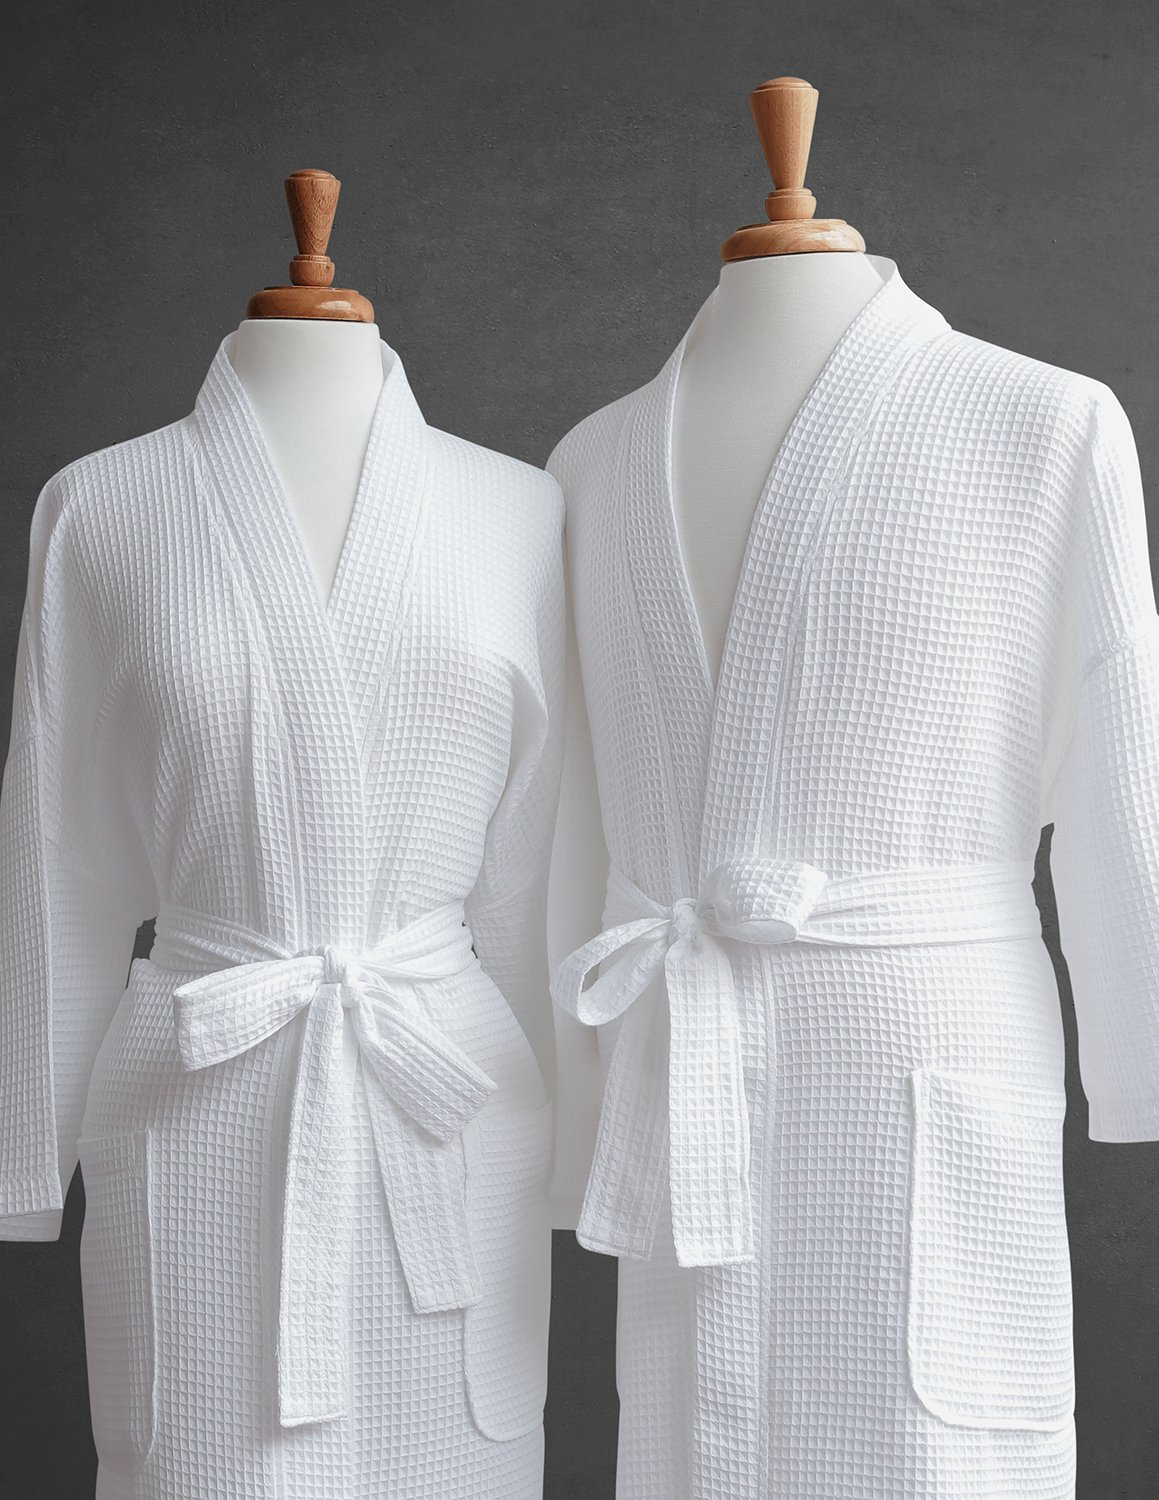 Waffle Robe - 100% Egyptian Cotton - Unisex/One Size Fits Most - Waffle Weave, Spa Bathrobe, Luxurious, Soft, Plush - Perfect for All Seasons - Luxor Linens - Giovanni Collection - Customizable